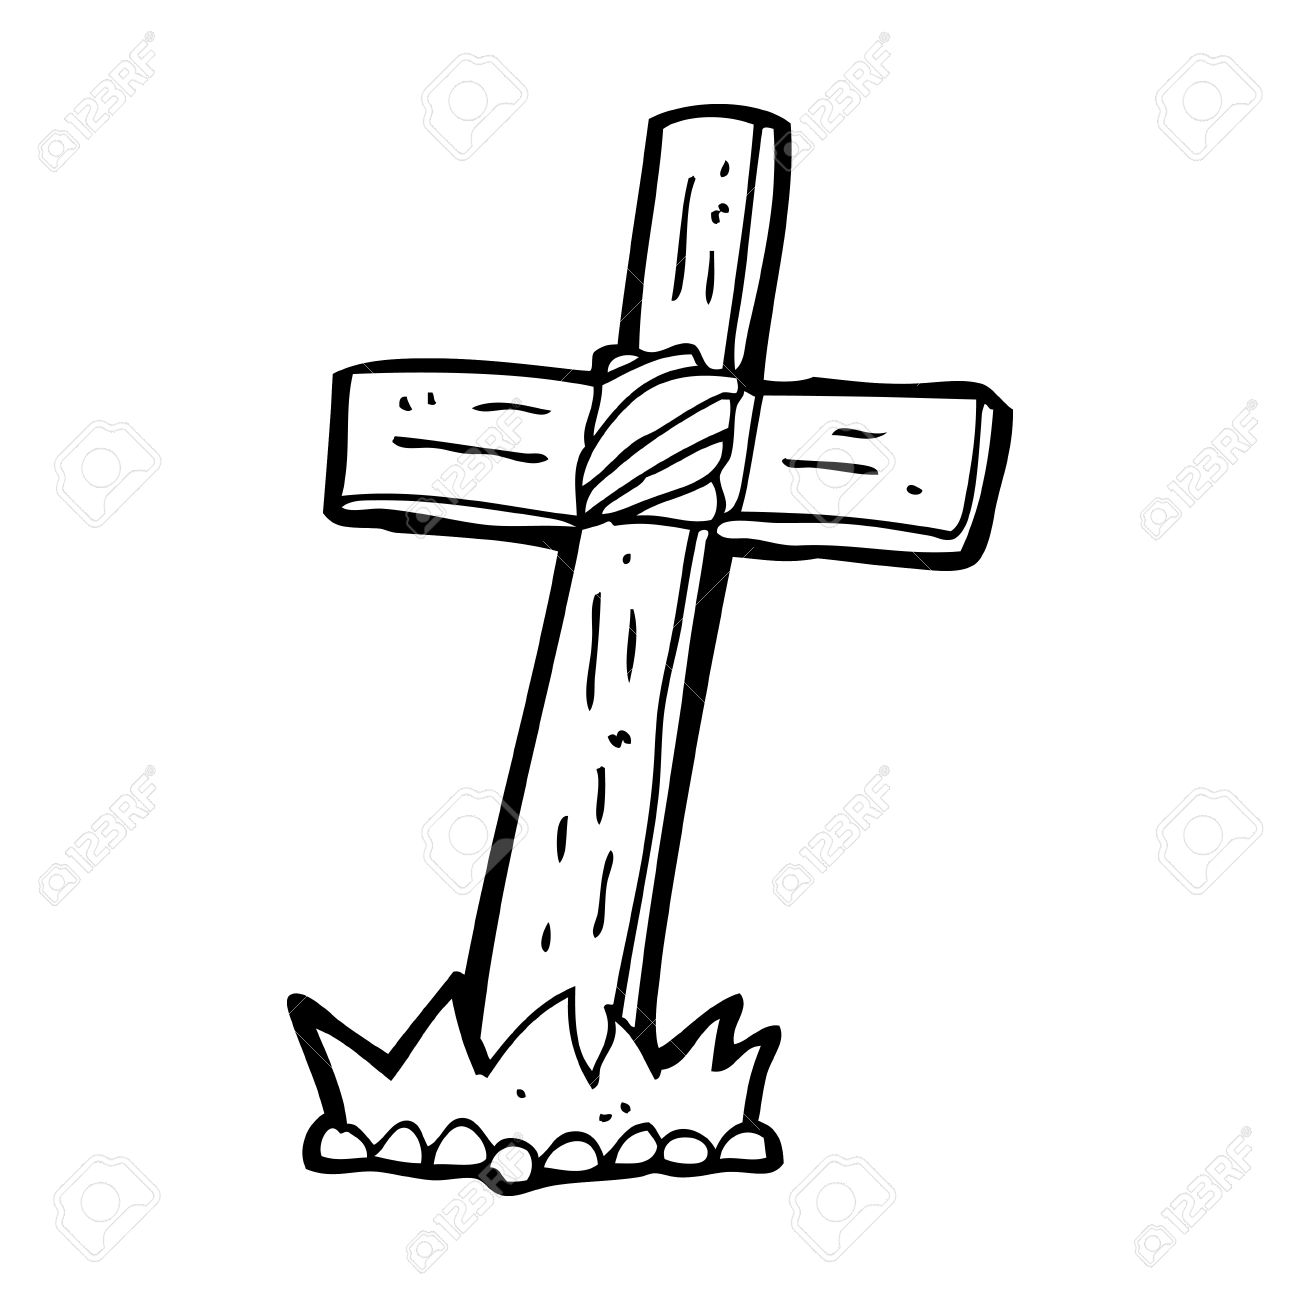 Rough Wooden Cross Clipart